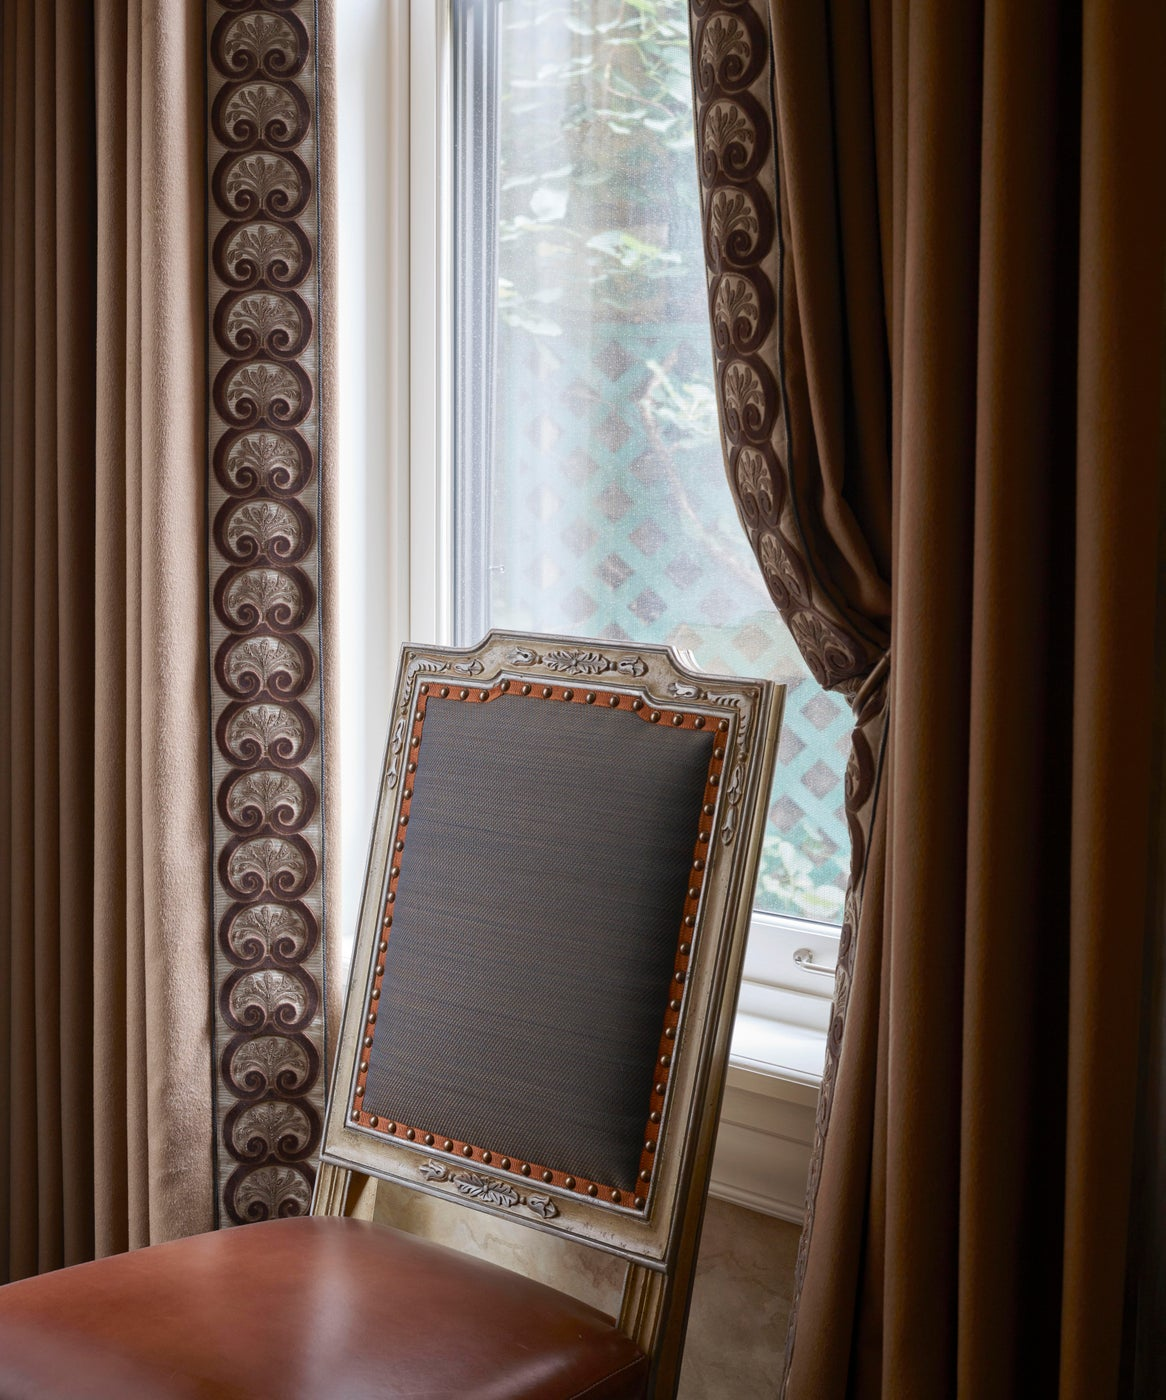 Drapery and chair detail showing exquisite trims and detailing.